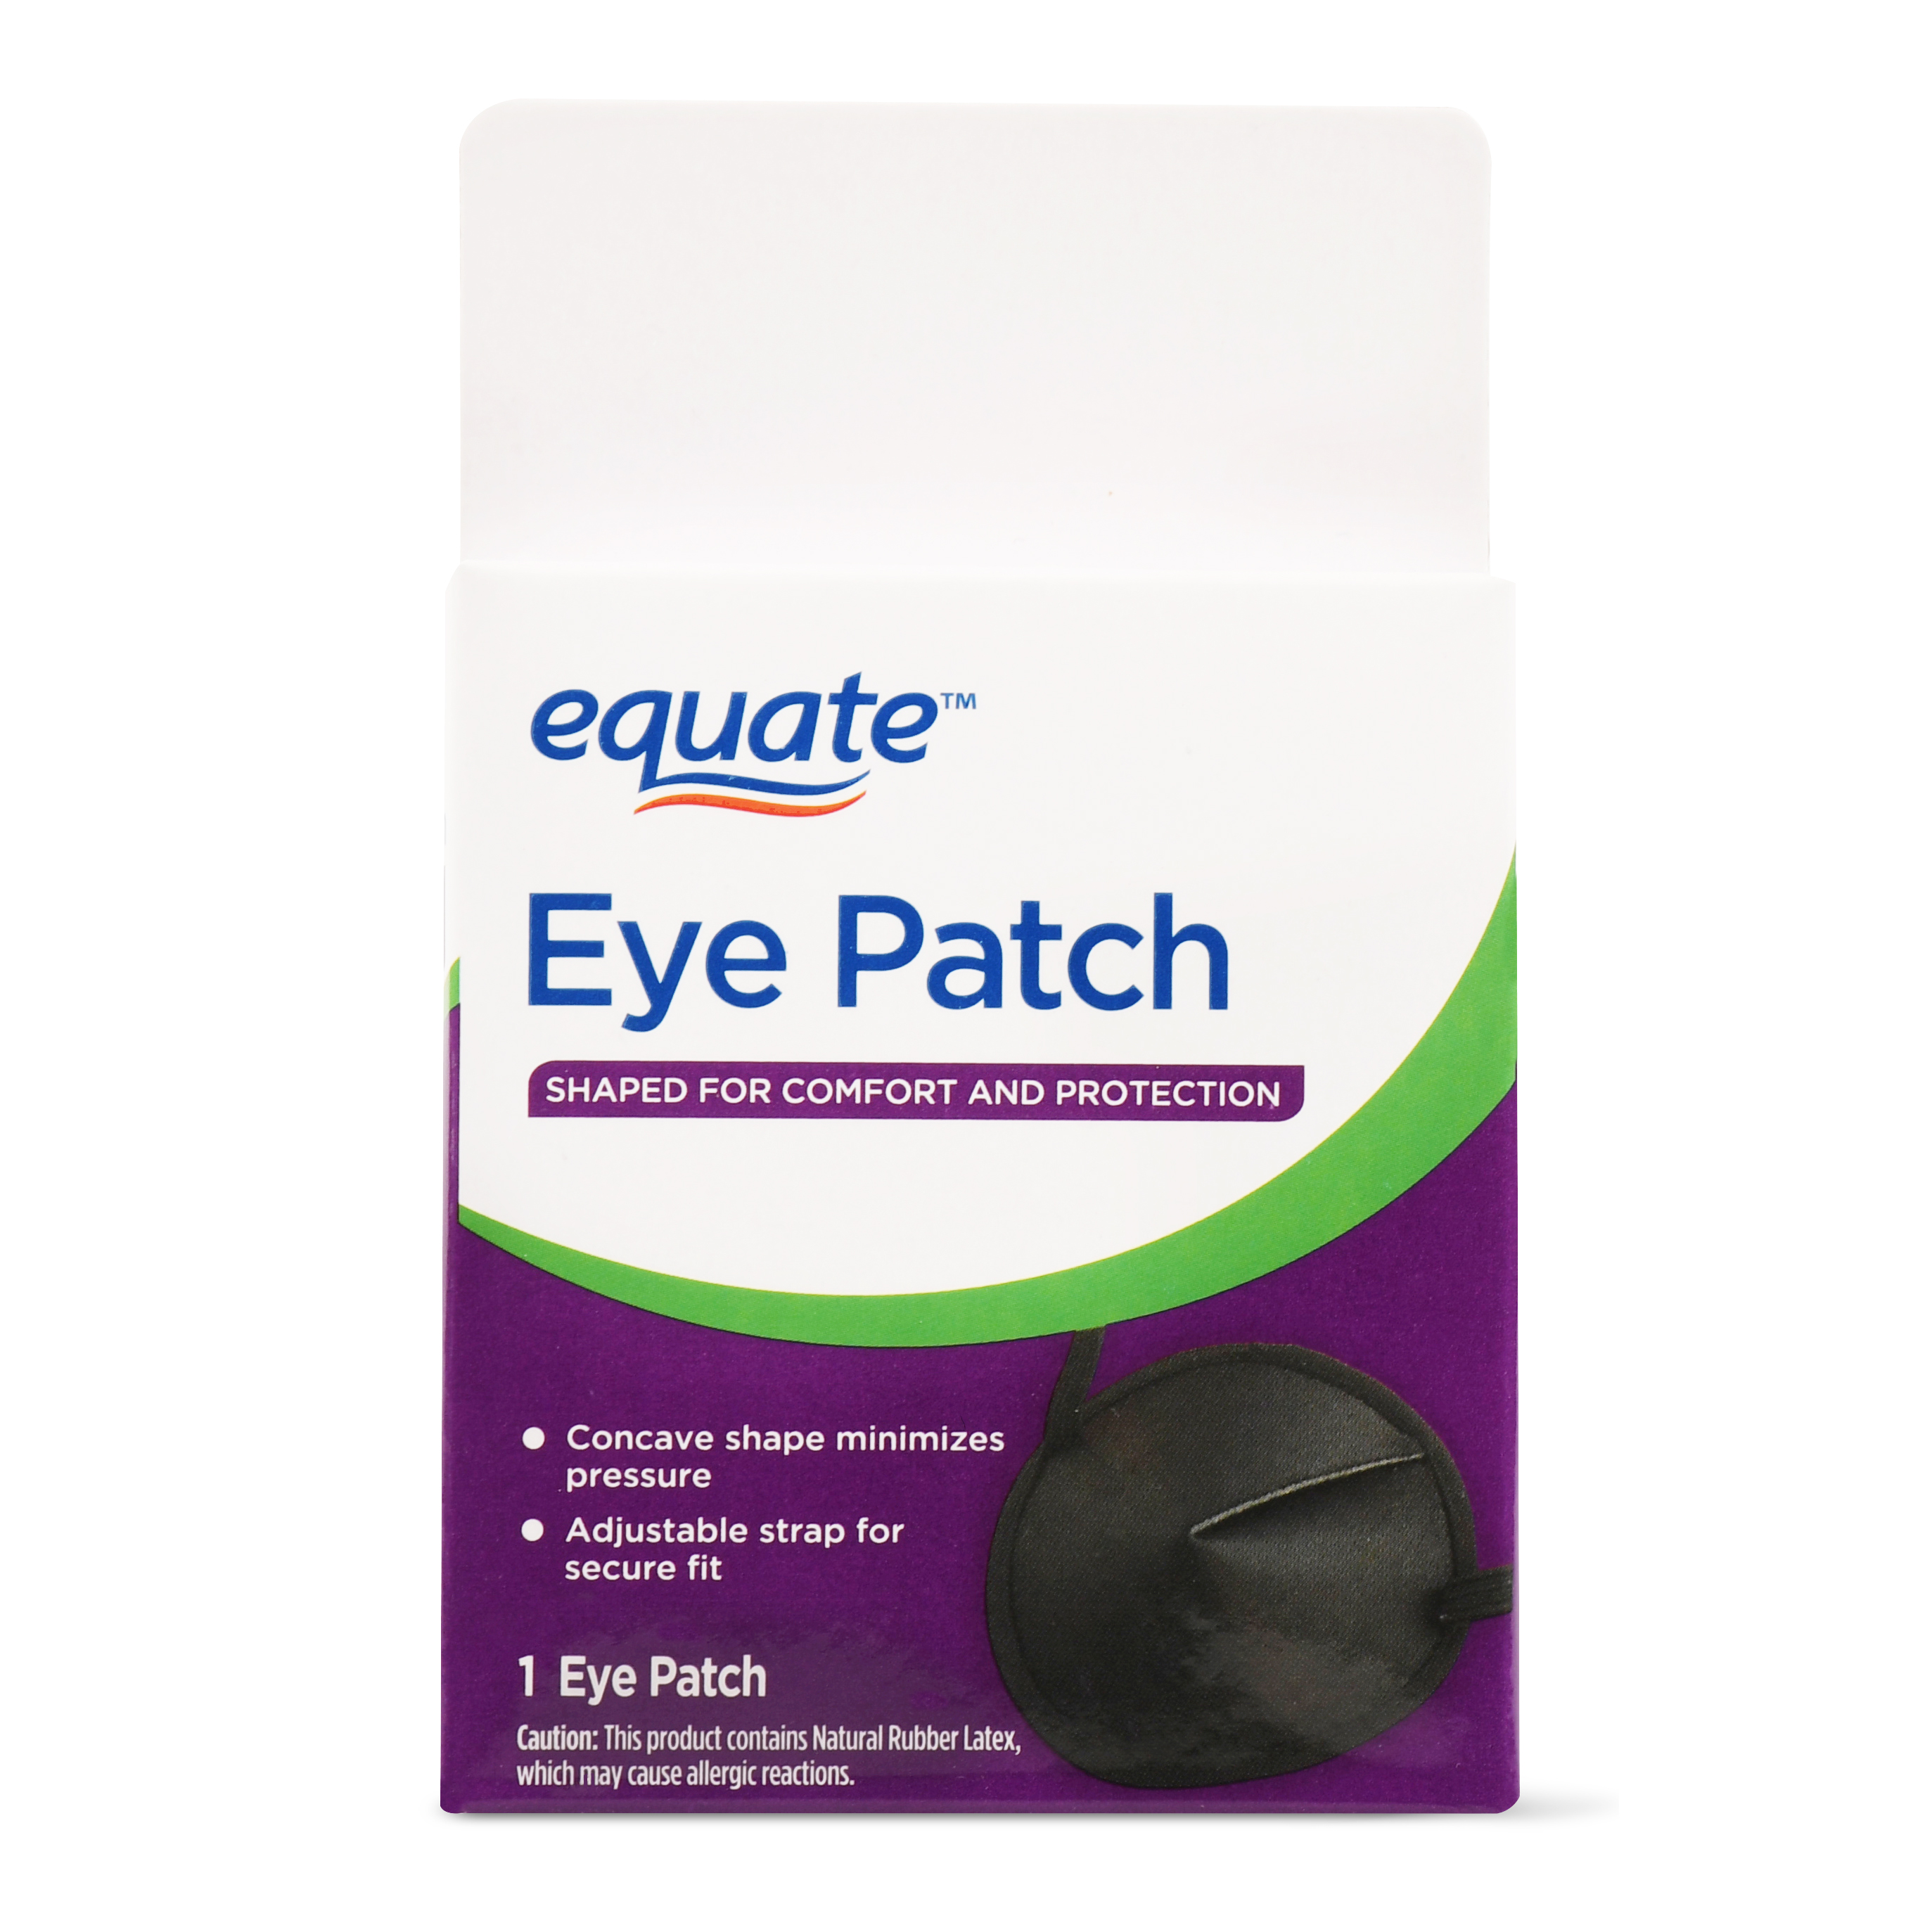 Equate Eye Patch